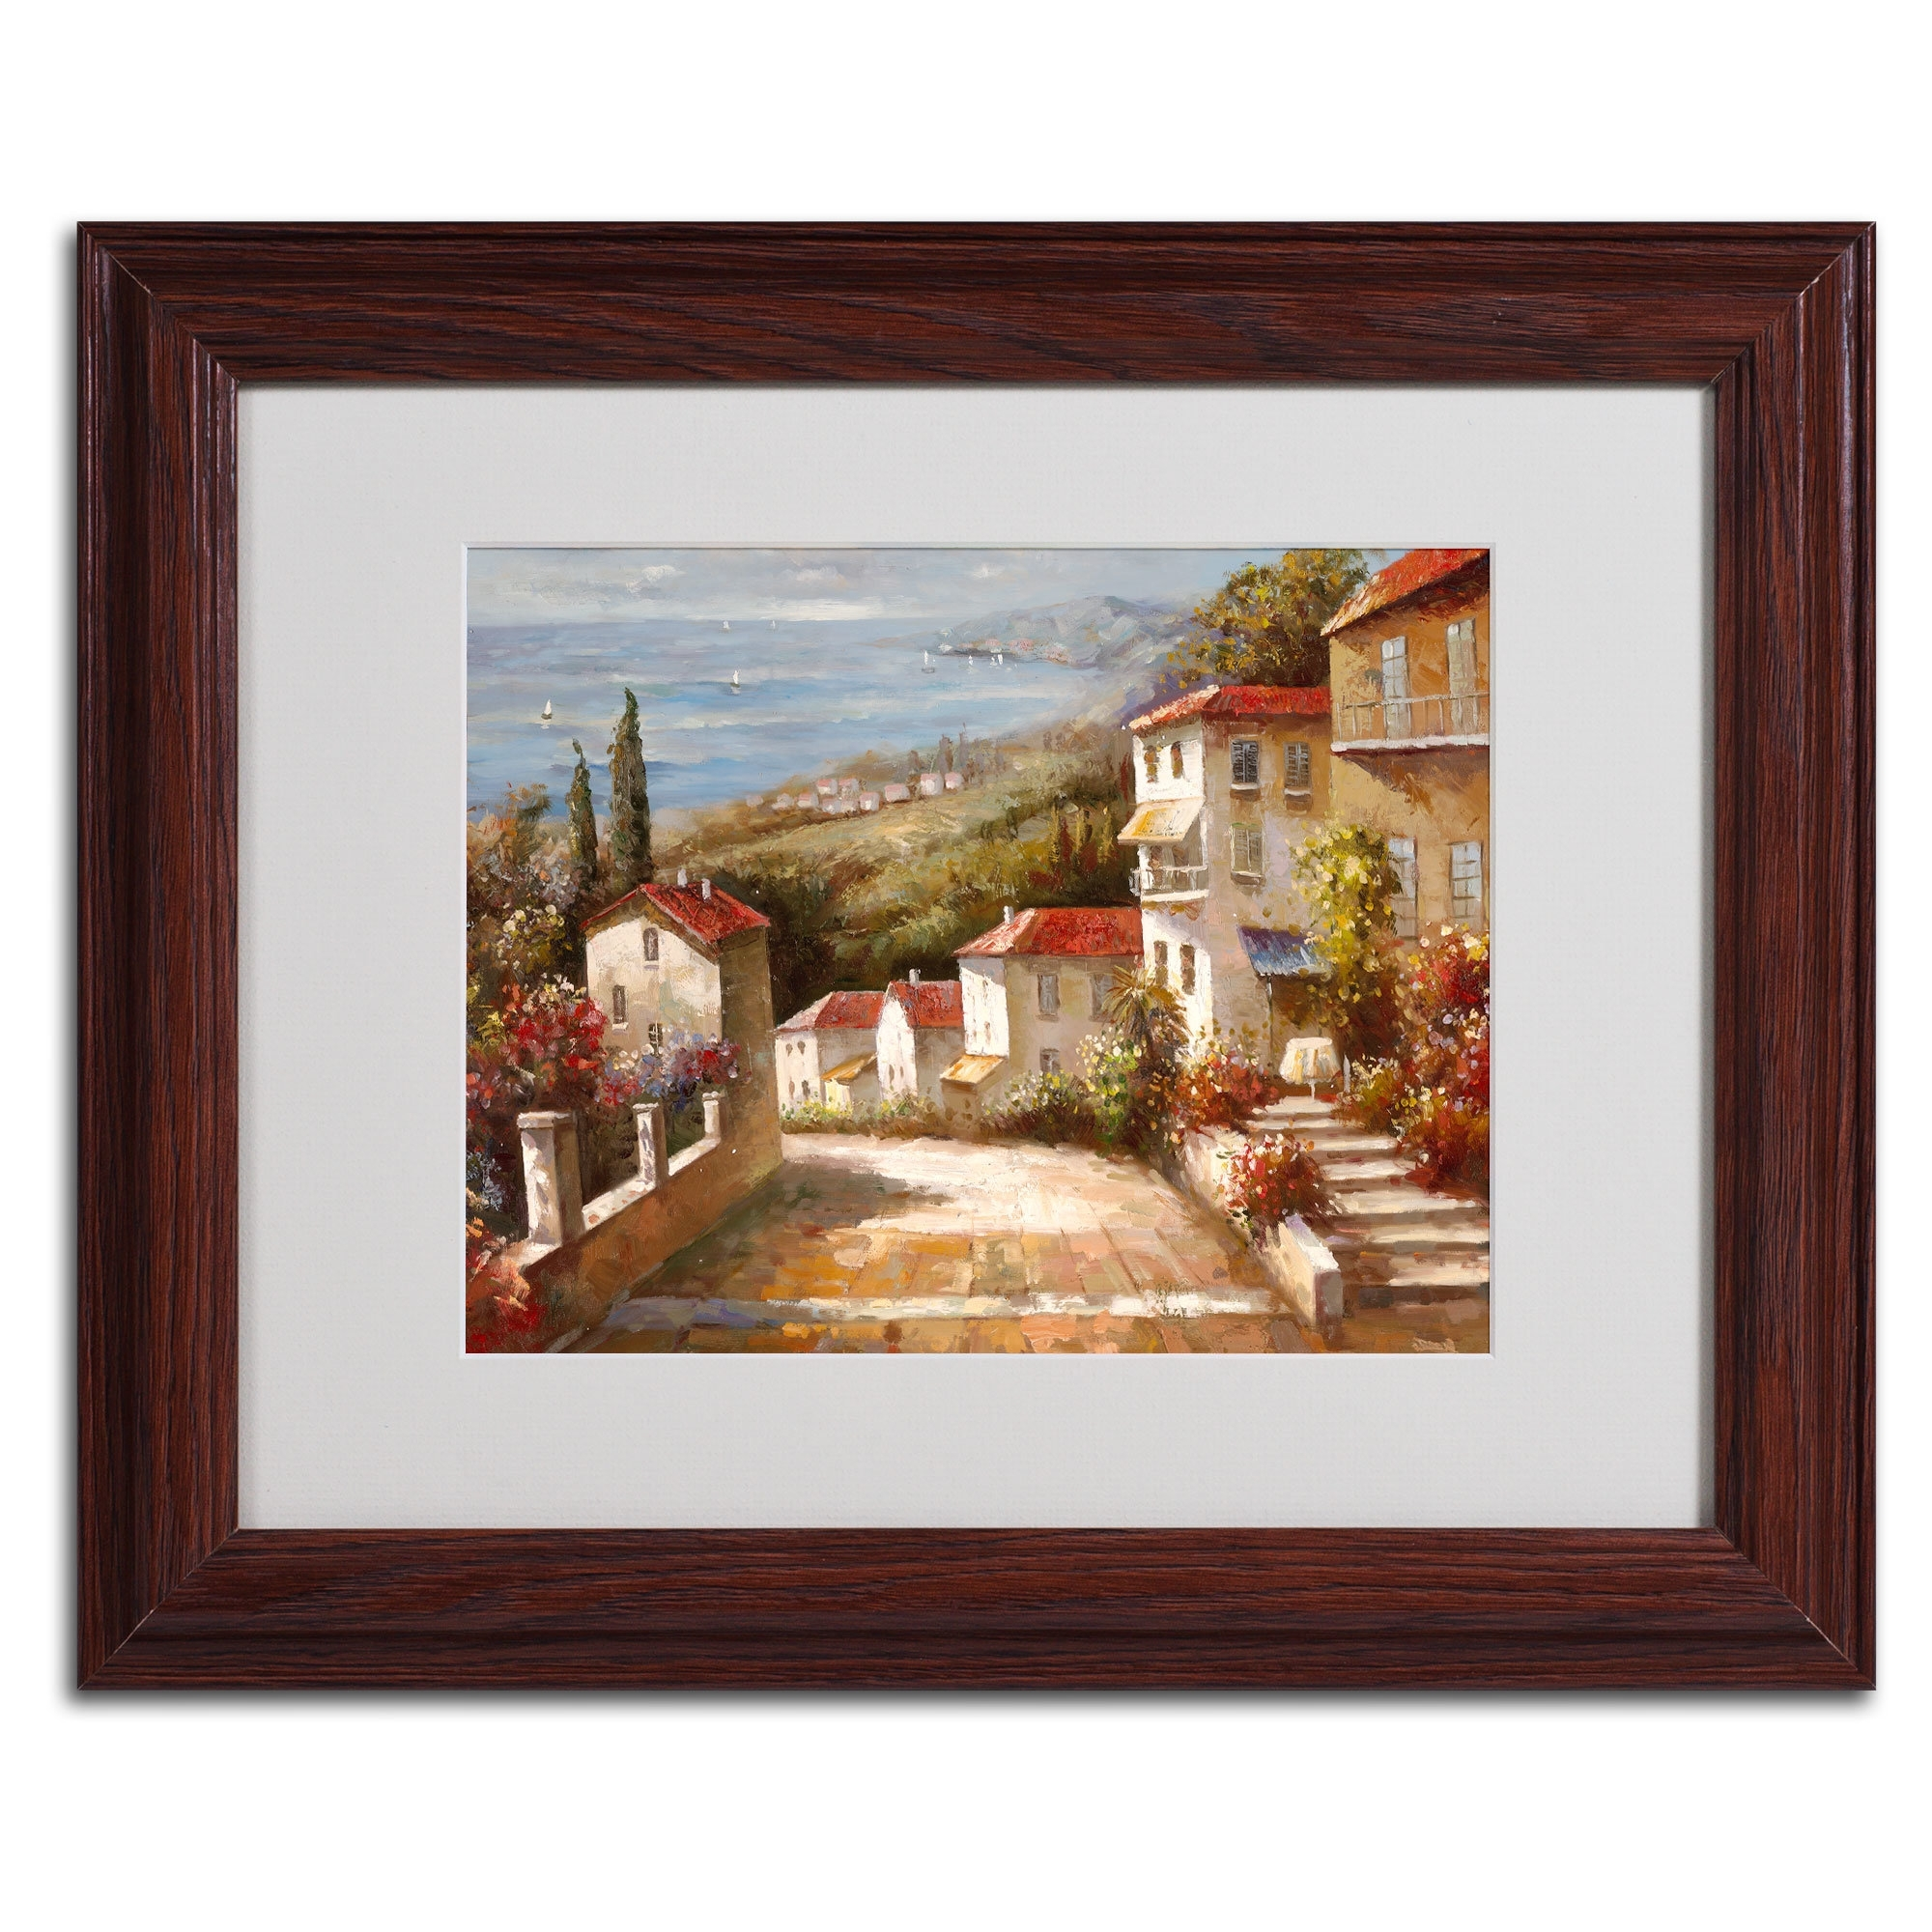 Trademark Art 'home In Tuscany'joval Framed Painting Print With Regard To Recent Joval Canvas Wall Art (View 10 of 15)